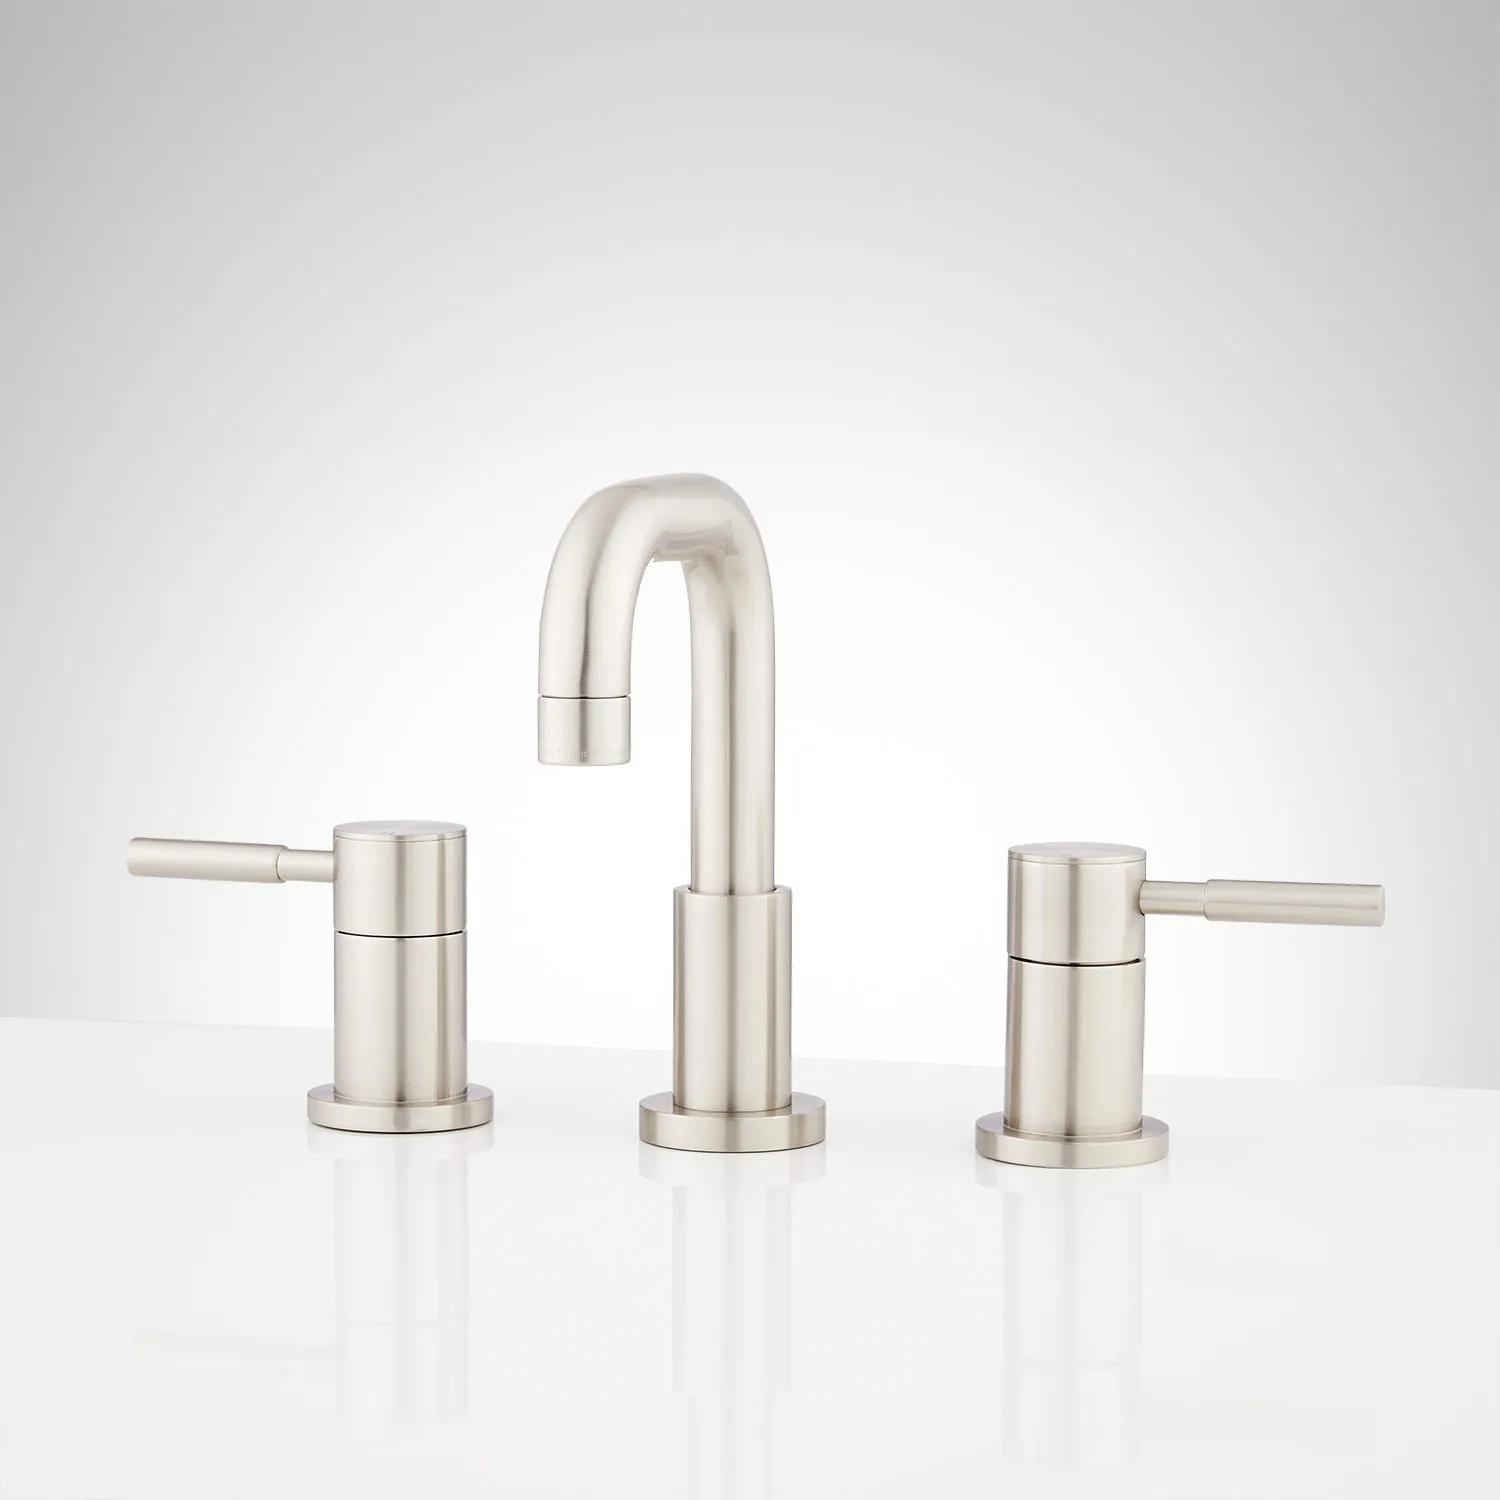 Edenton Widespread Bathroom Faucet Bathroom